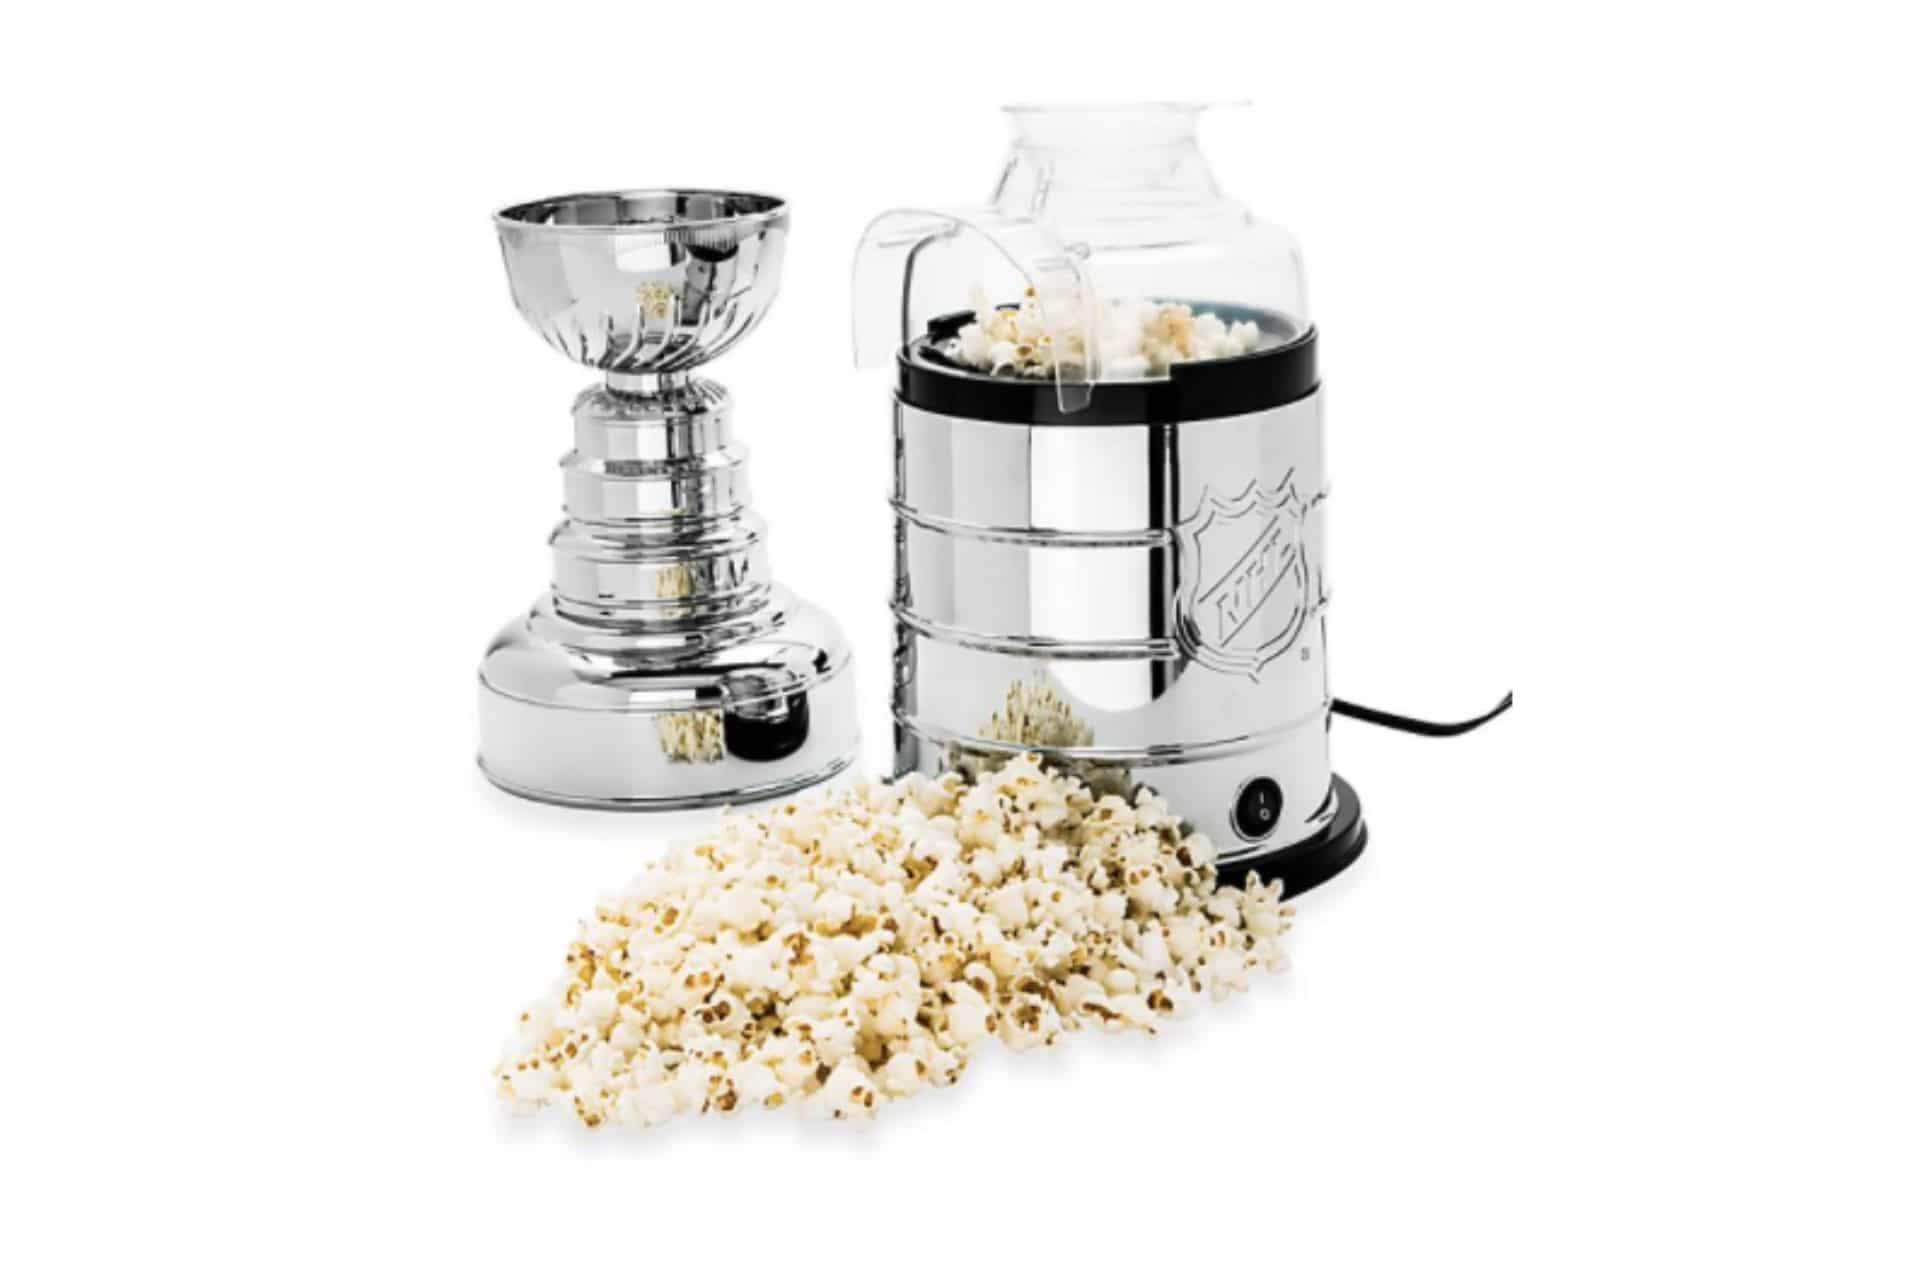 Stanley cup-shaped popcorn maker